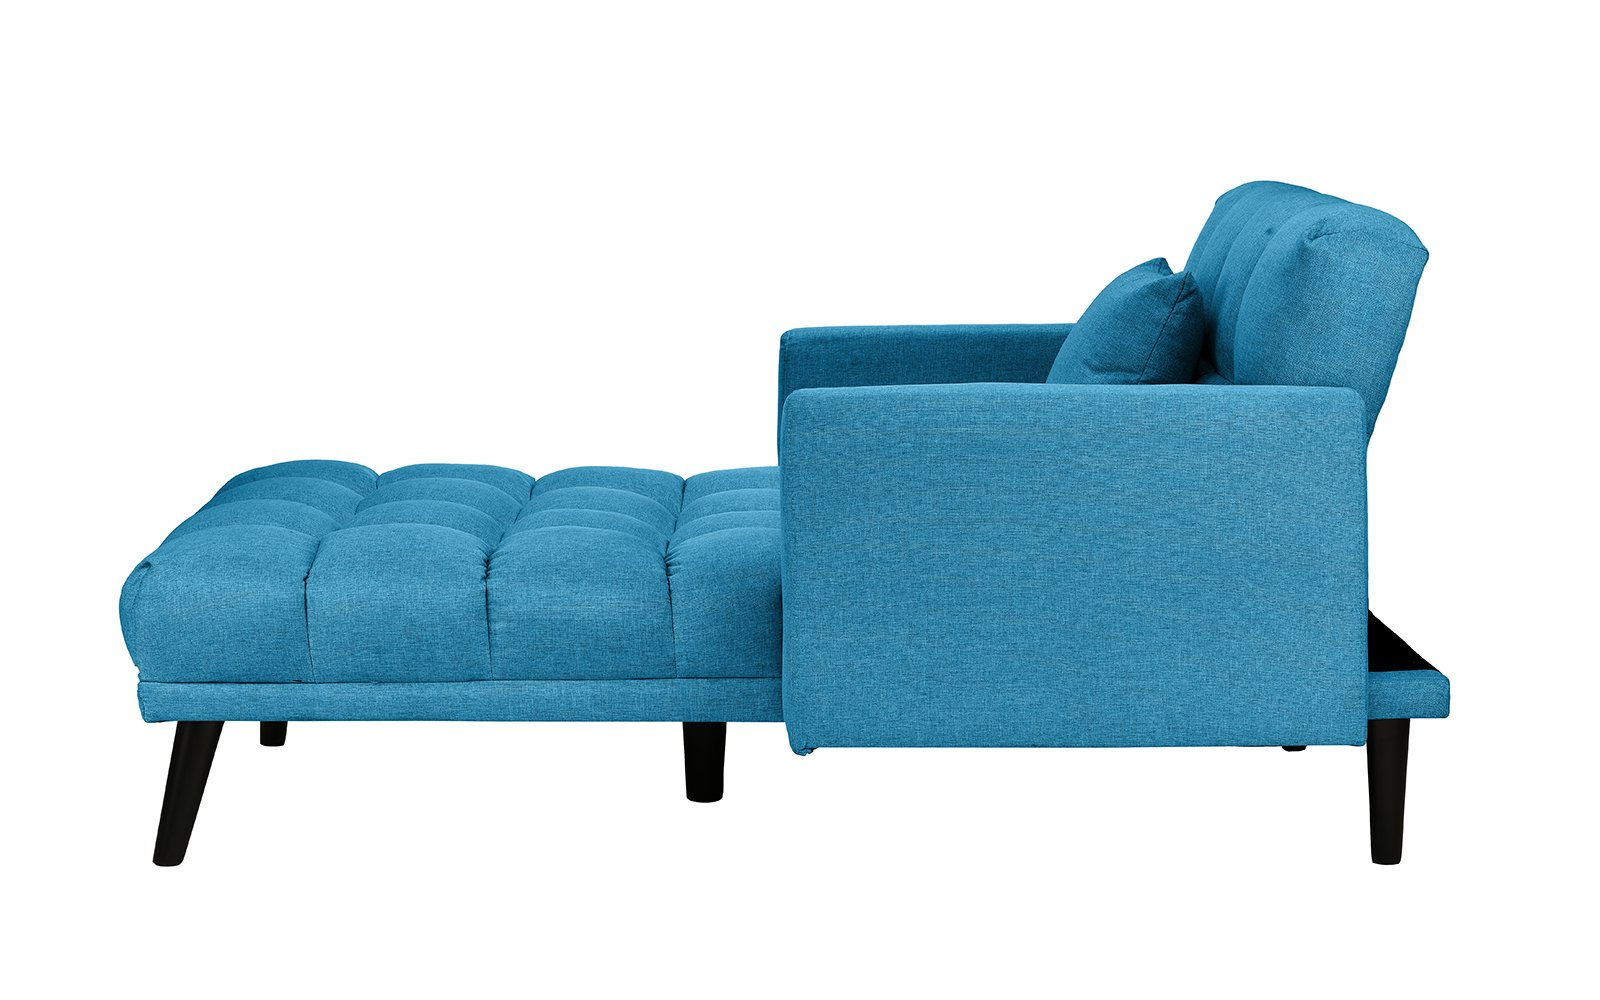 Best And Newest Modern Linen Recliner Sleeper Tufted Chaise Lounge, Single With Regard To Dulce Mid Century Chaise Sofas Dark Blue (View 11 of 25)